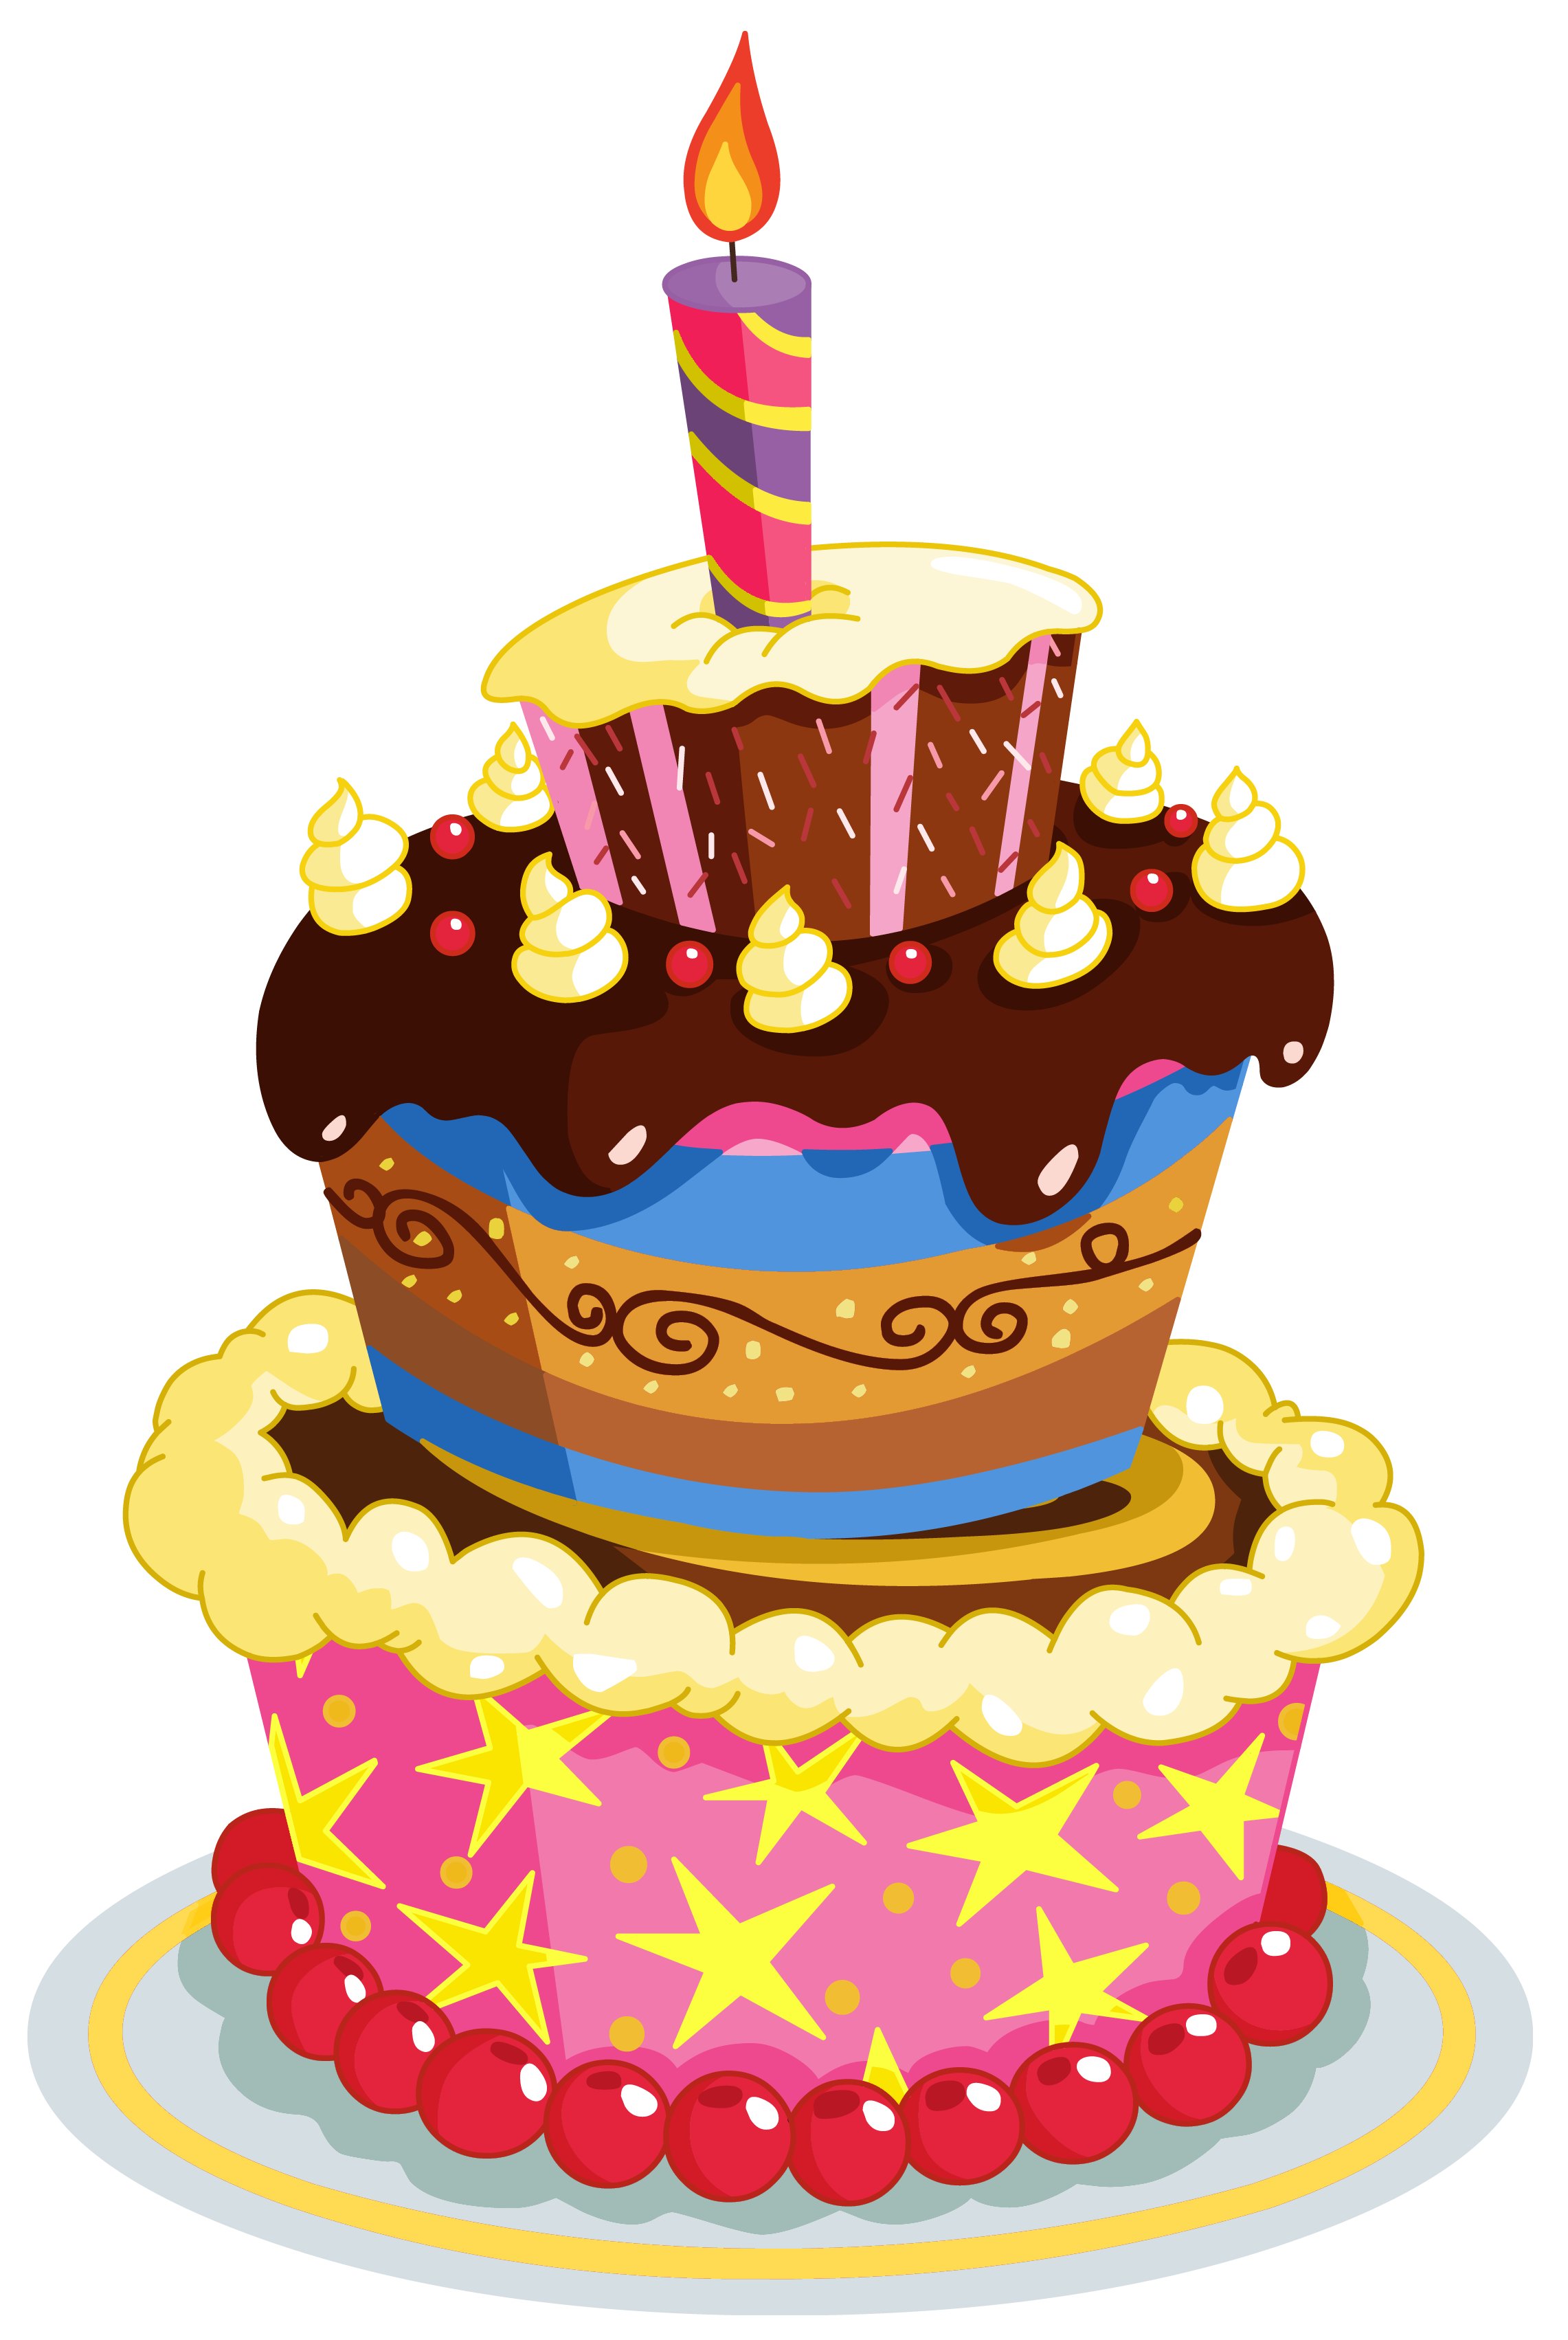 Birthday cake png. Images free download